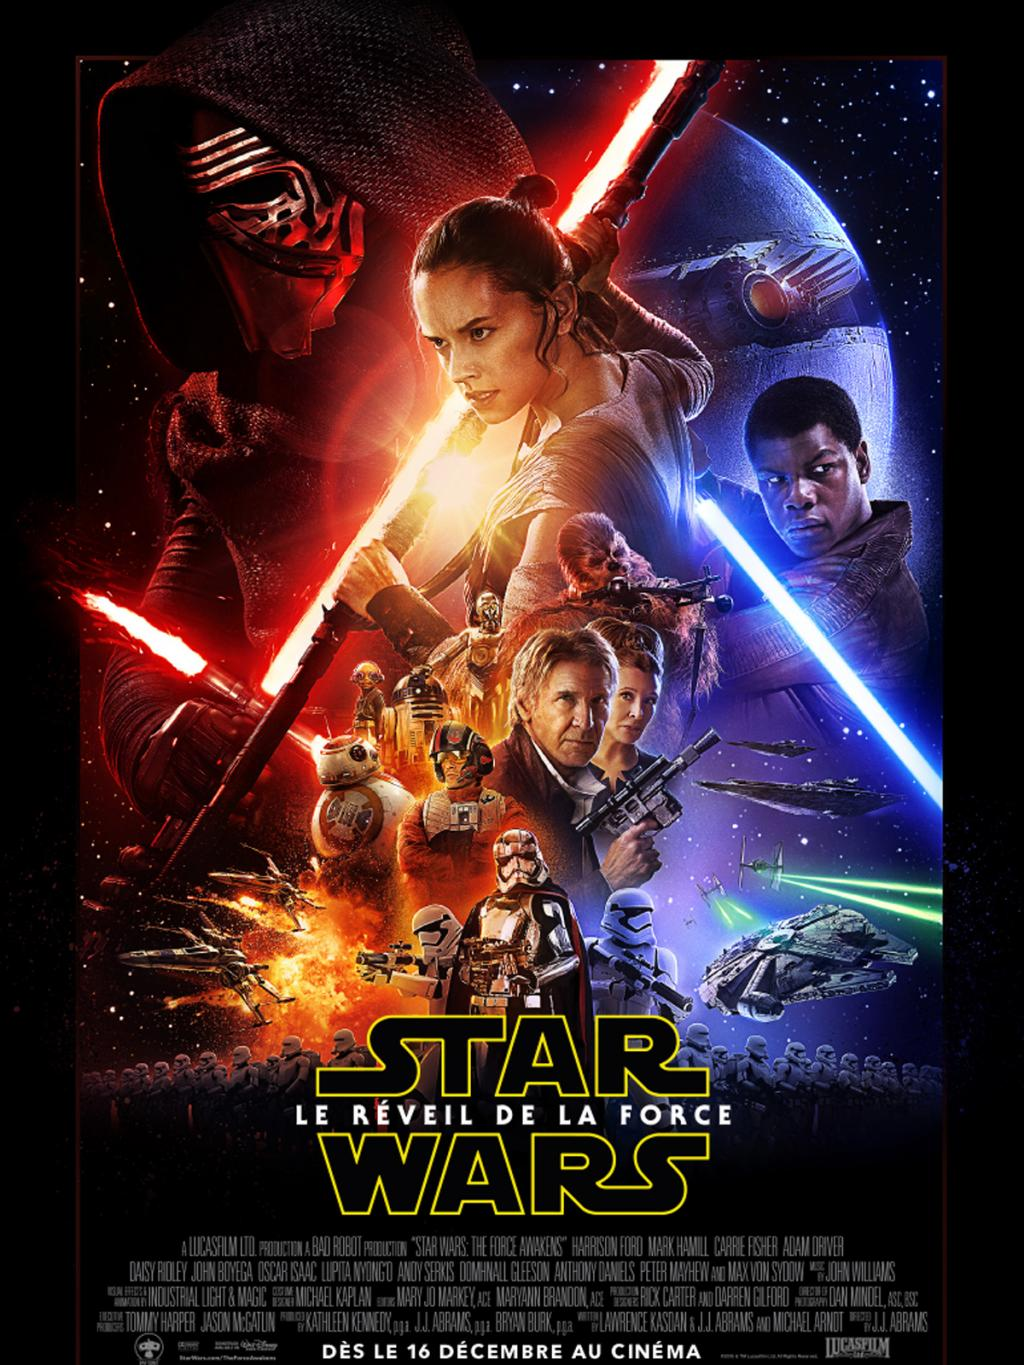 Wallpaper affiche cine Star Wars